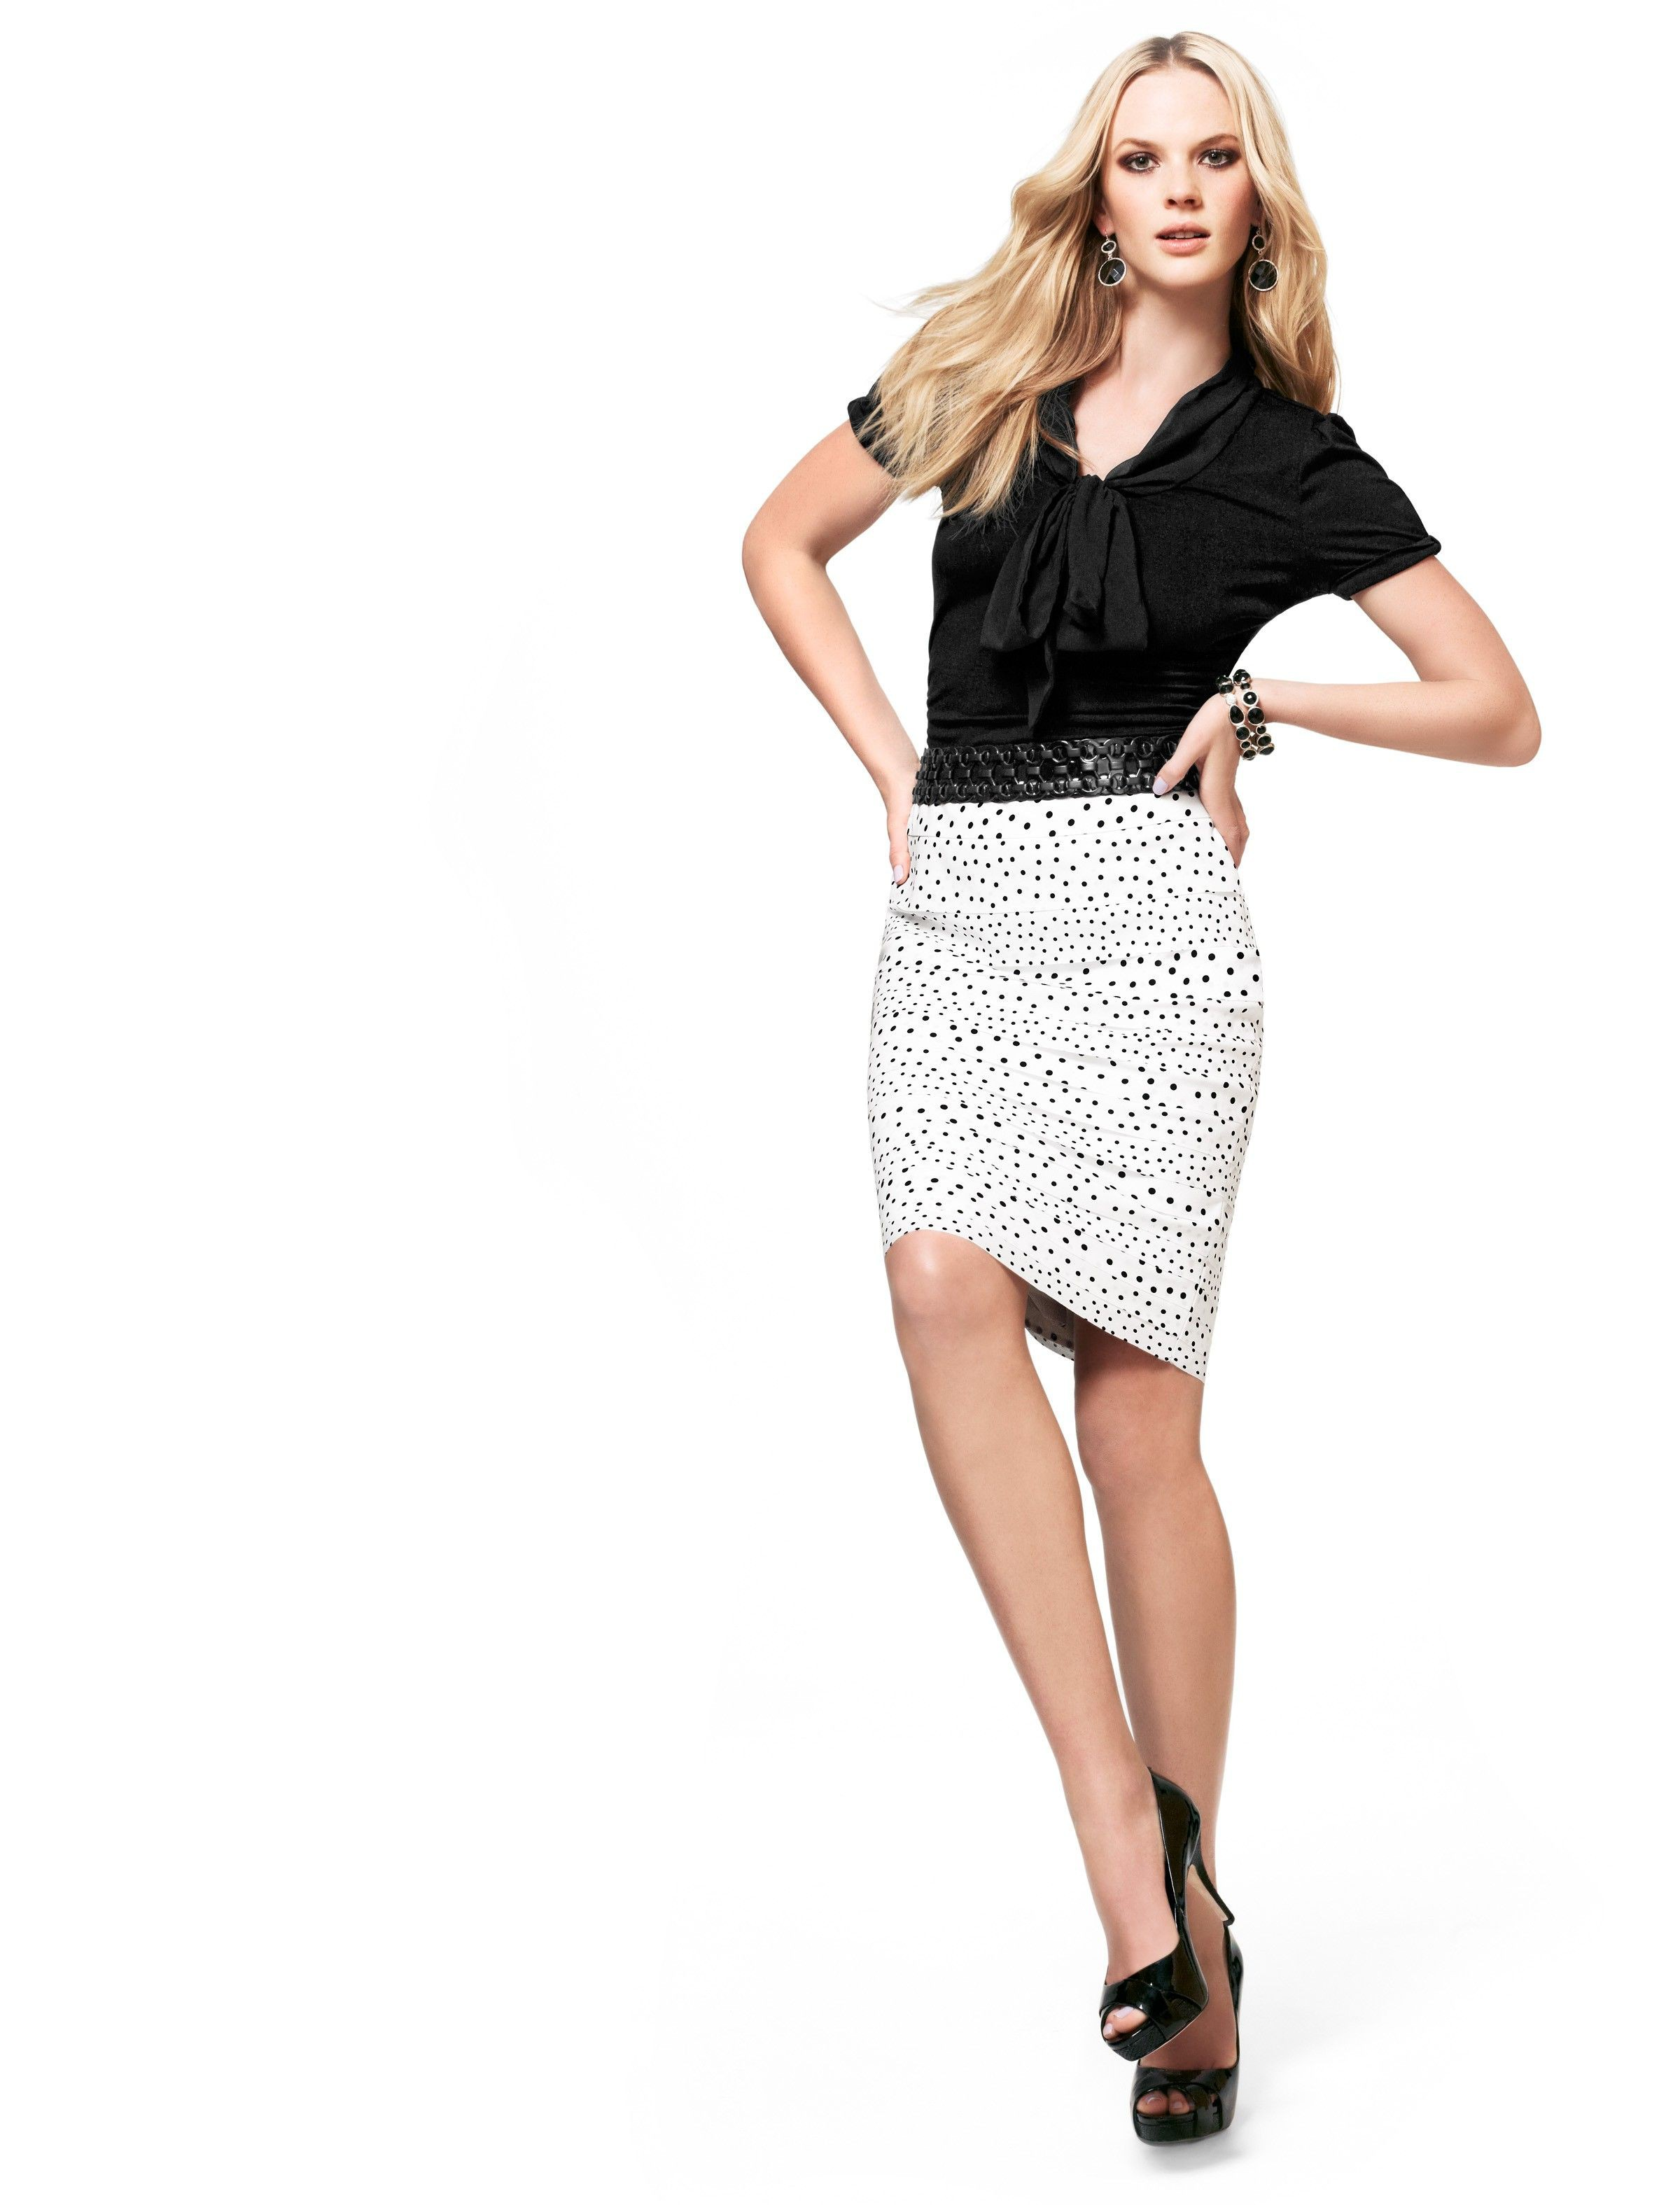 Black and white classy outfit with pencil skirt, miniskirt